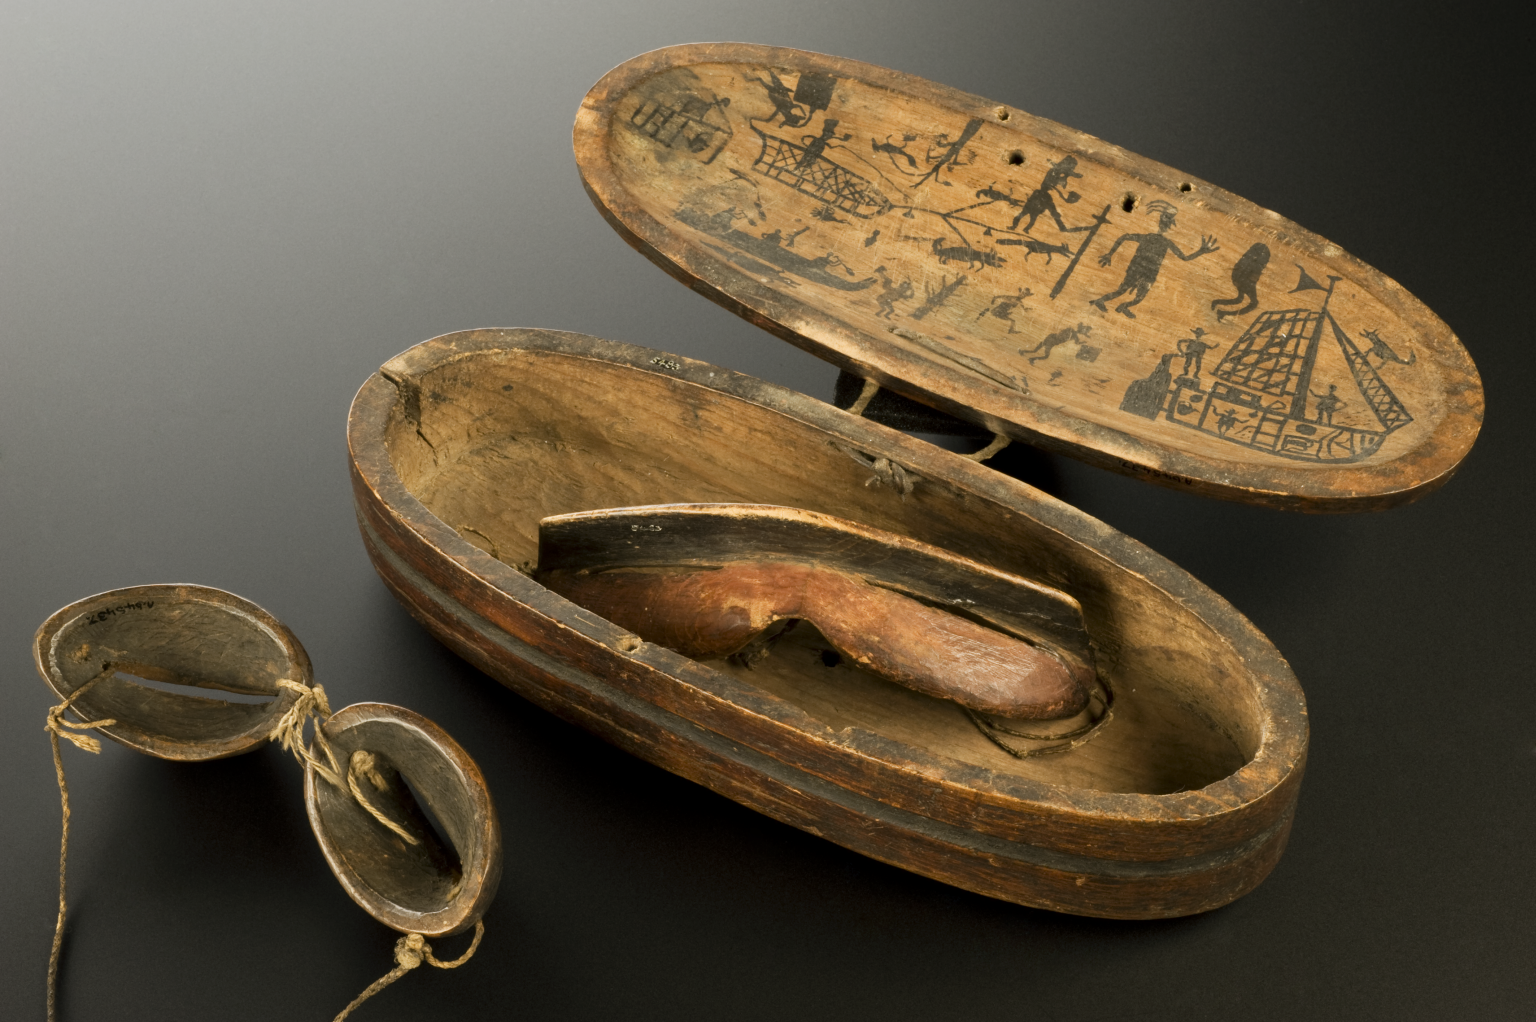 """""""Wooden snow goggles and case, Inuit, North America, 1801-1900: Snow blindness is caused by sunlight reflecting off white snow and ice. This painful condition causes temporary loss of vision. The Inuit people in North America wore goggles to shield their eyes from such glare. These goggles are made from pine and rawhide. Slits in the rawhide eye pieces let the wearer see. They are kept in a wooden case decorated with hunting scenes."""""""